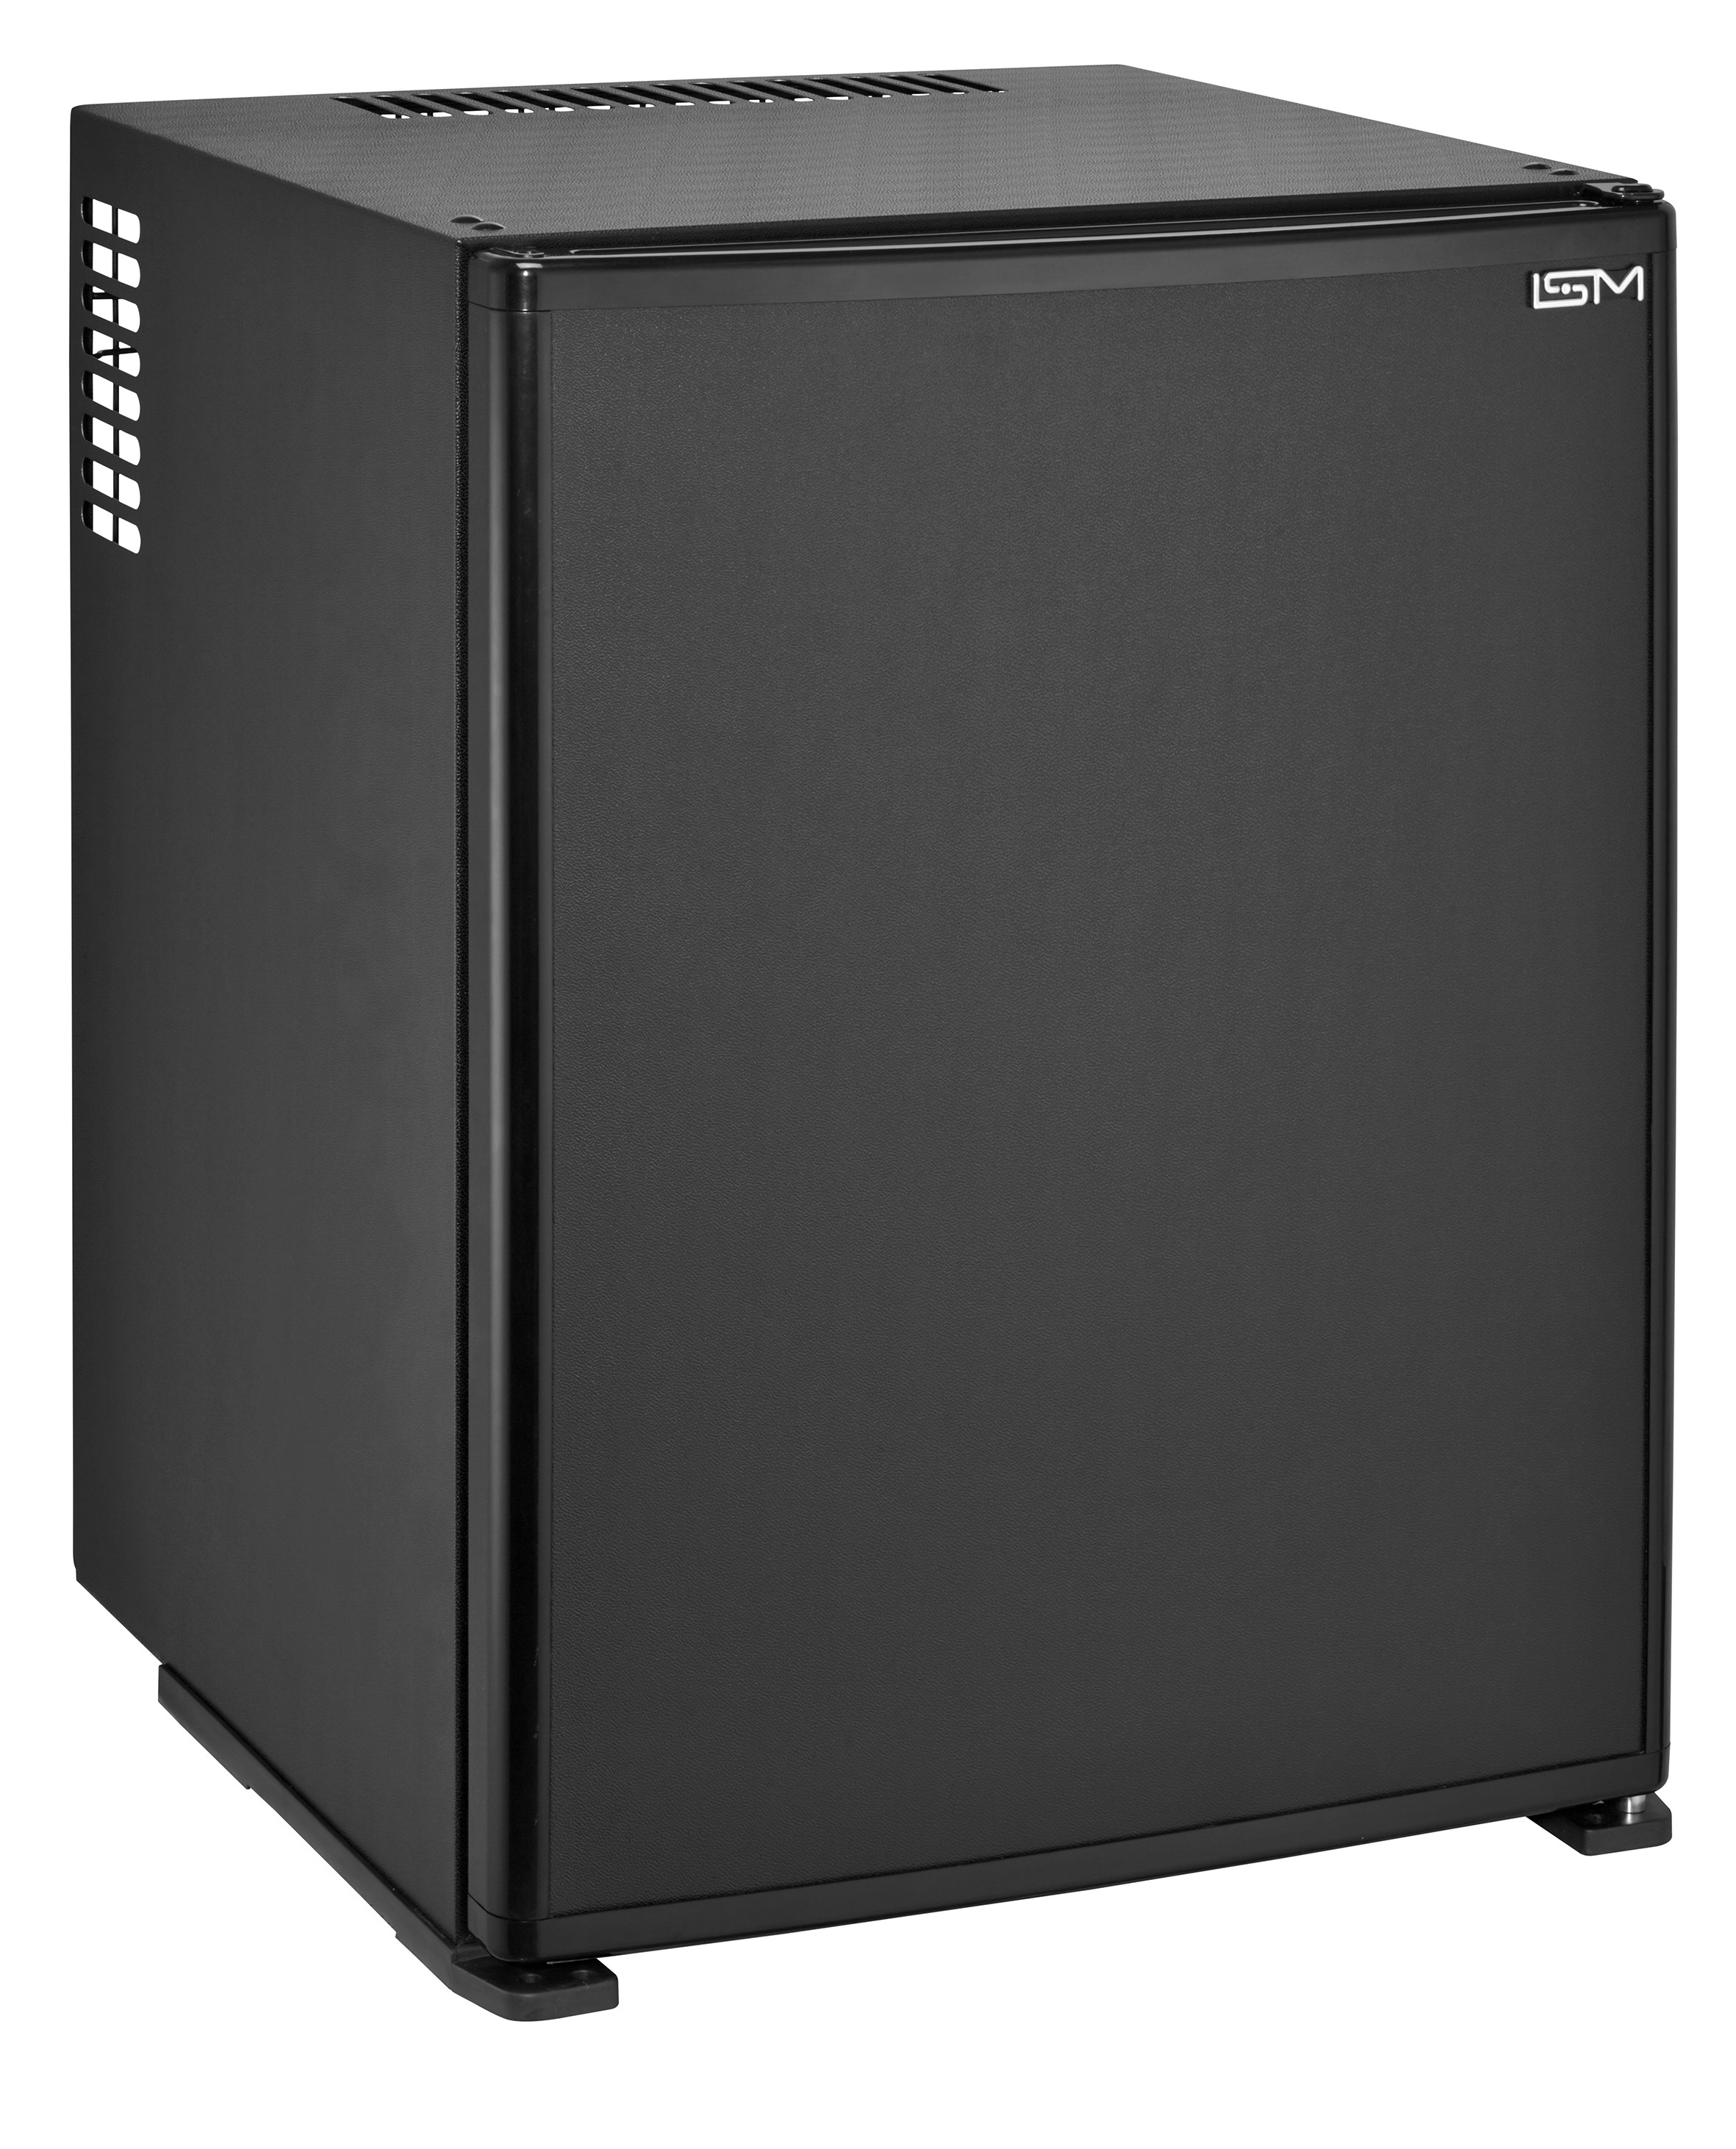 Conceptum Mini Bar ISM ECO 40 Black